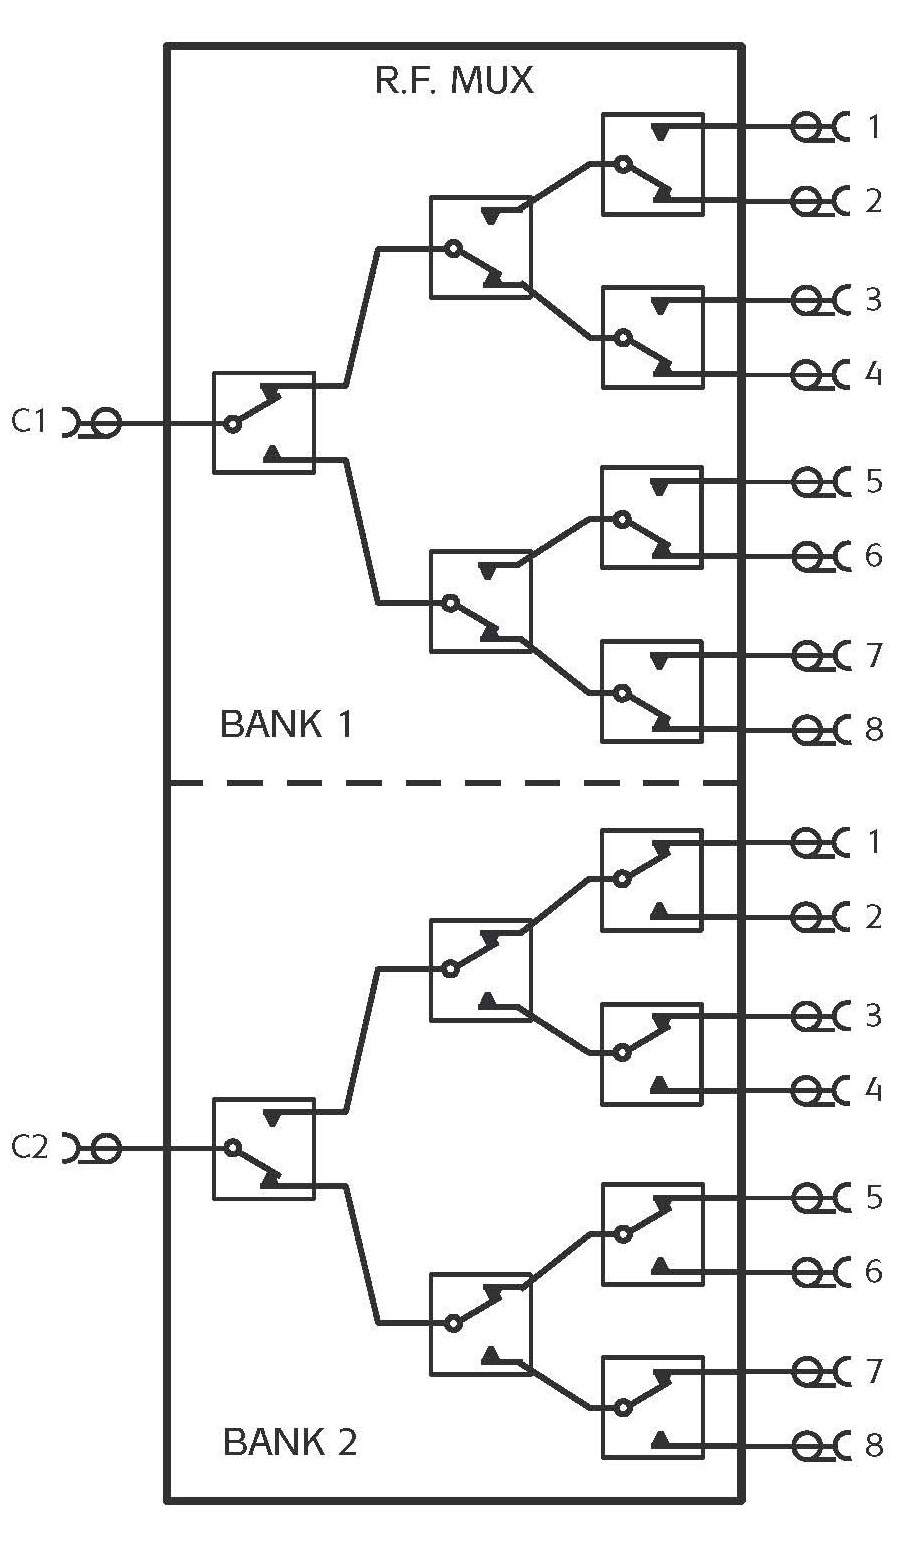 Functional diagram of 40-874